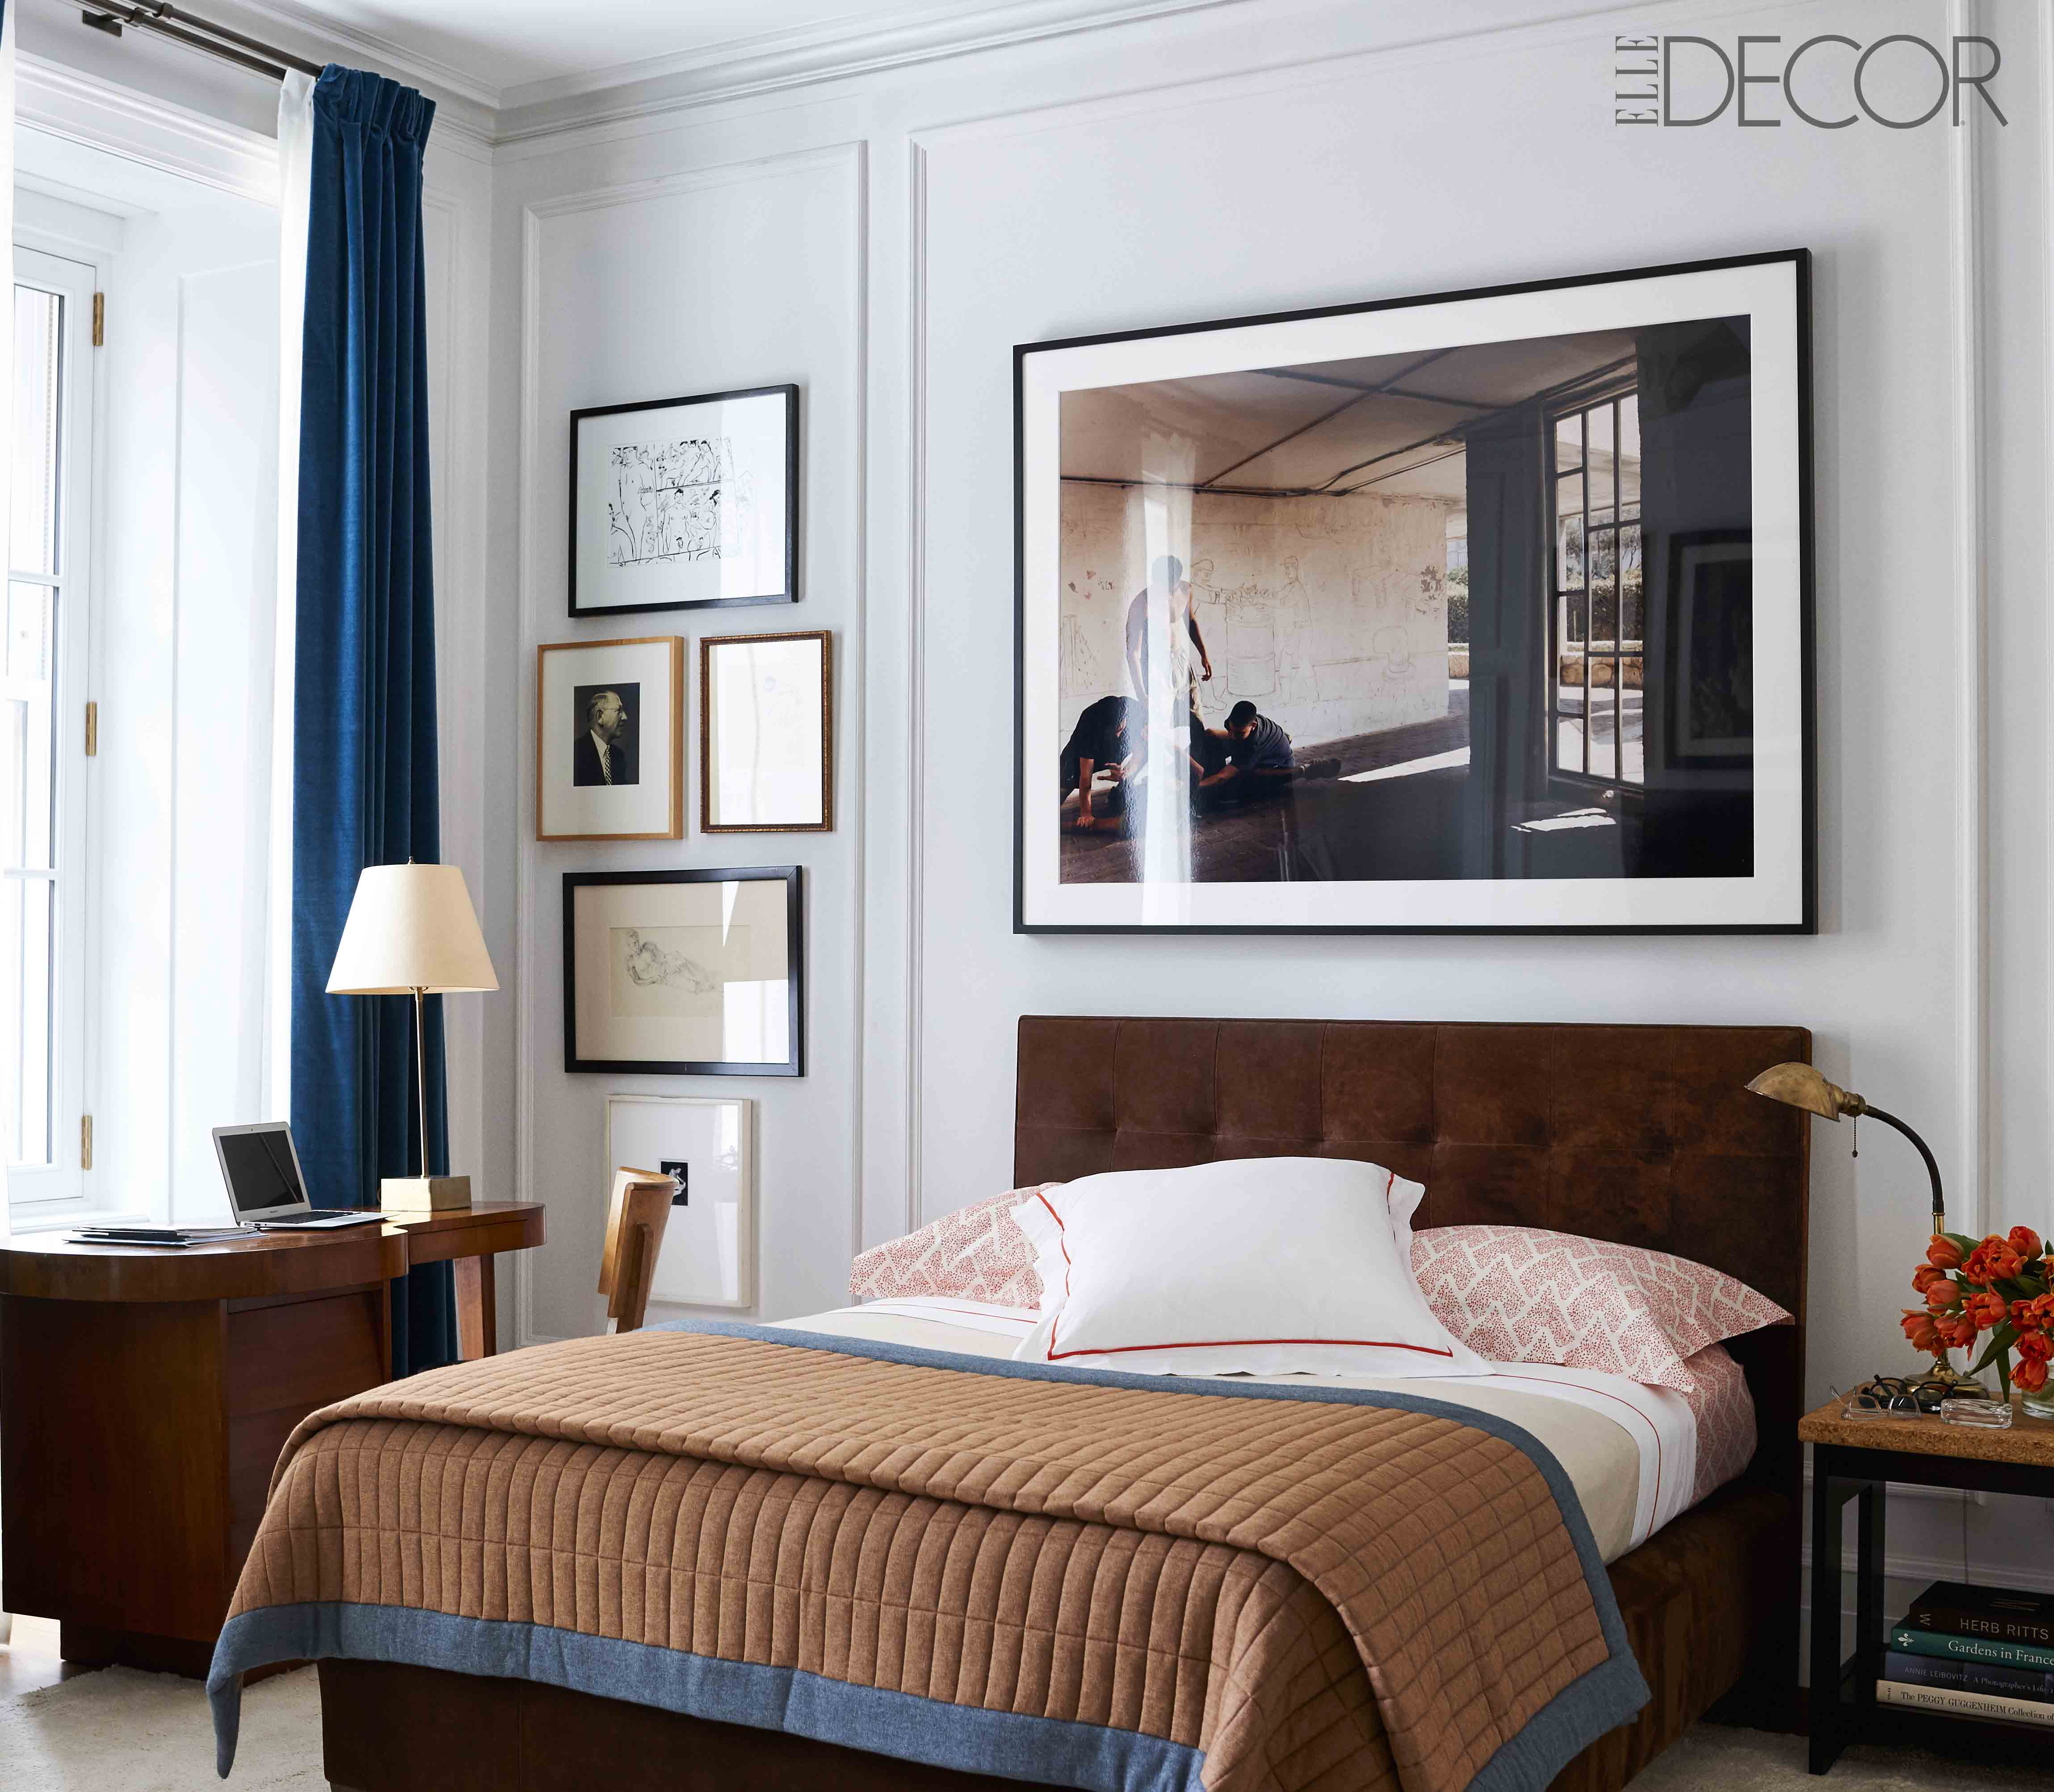 Average Nyc Apartment Bedroom Master Bedroom Design Ideas Nz Bedroom Chair Bedroom With Black Curtains: Inside The Upper West Side Apartment Of Composer Jonathan